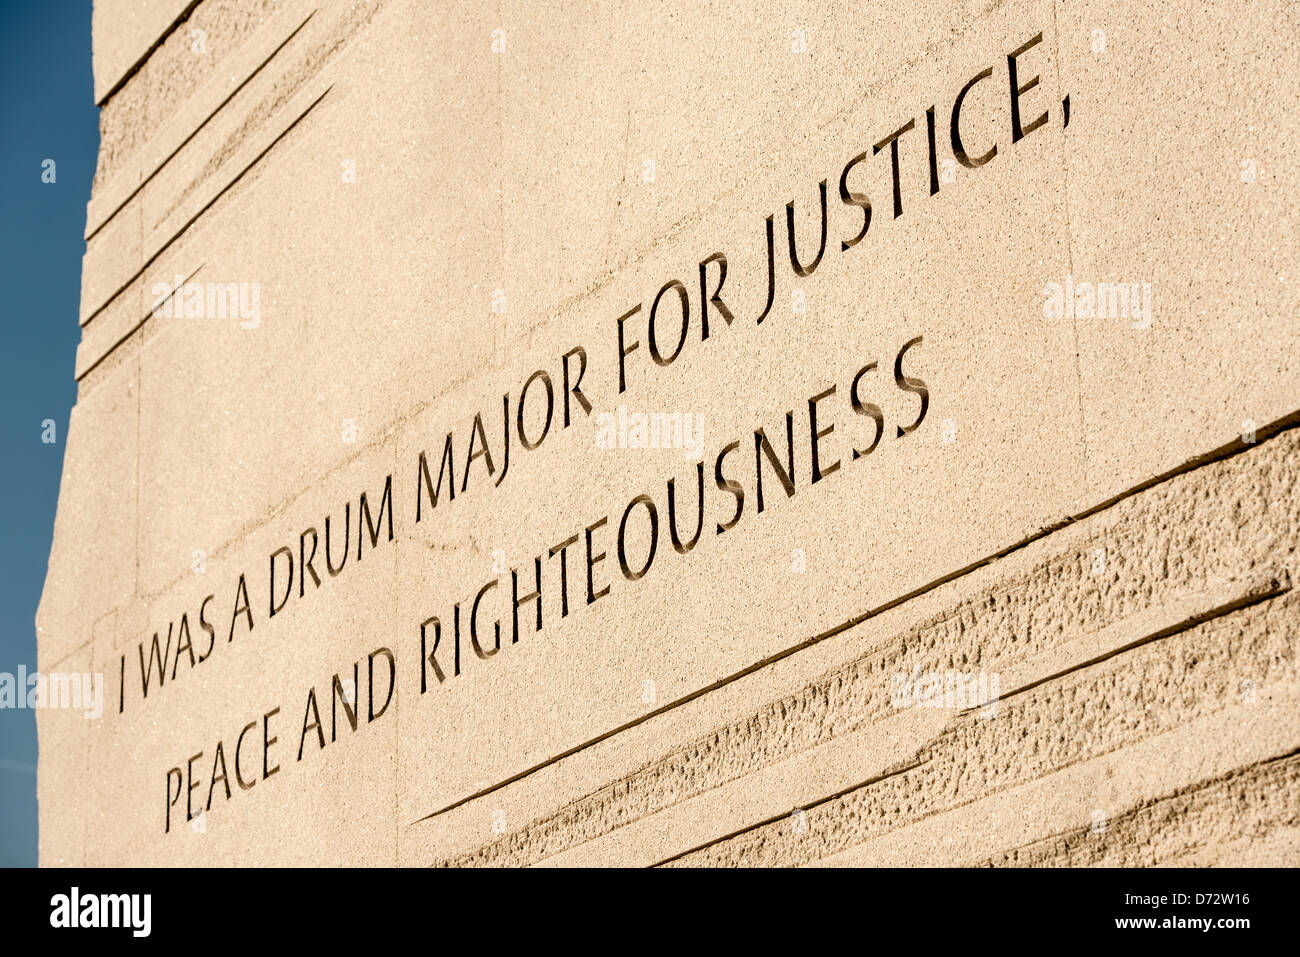 WASHINGTON DC, USA - Controversial inscruption at the Martin Luther King Jr Memorial on the banks of the Tidal Basin - Stock Image